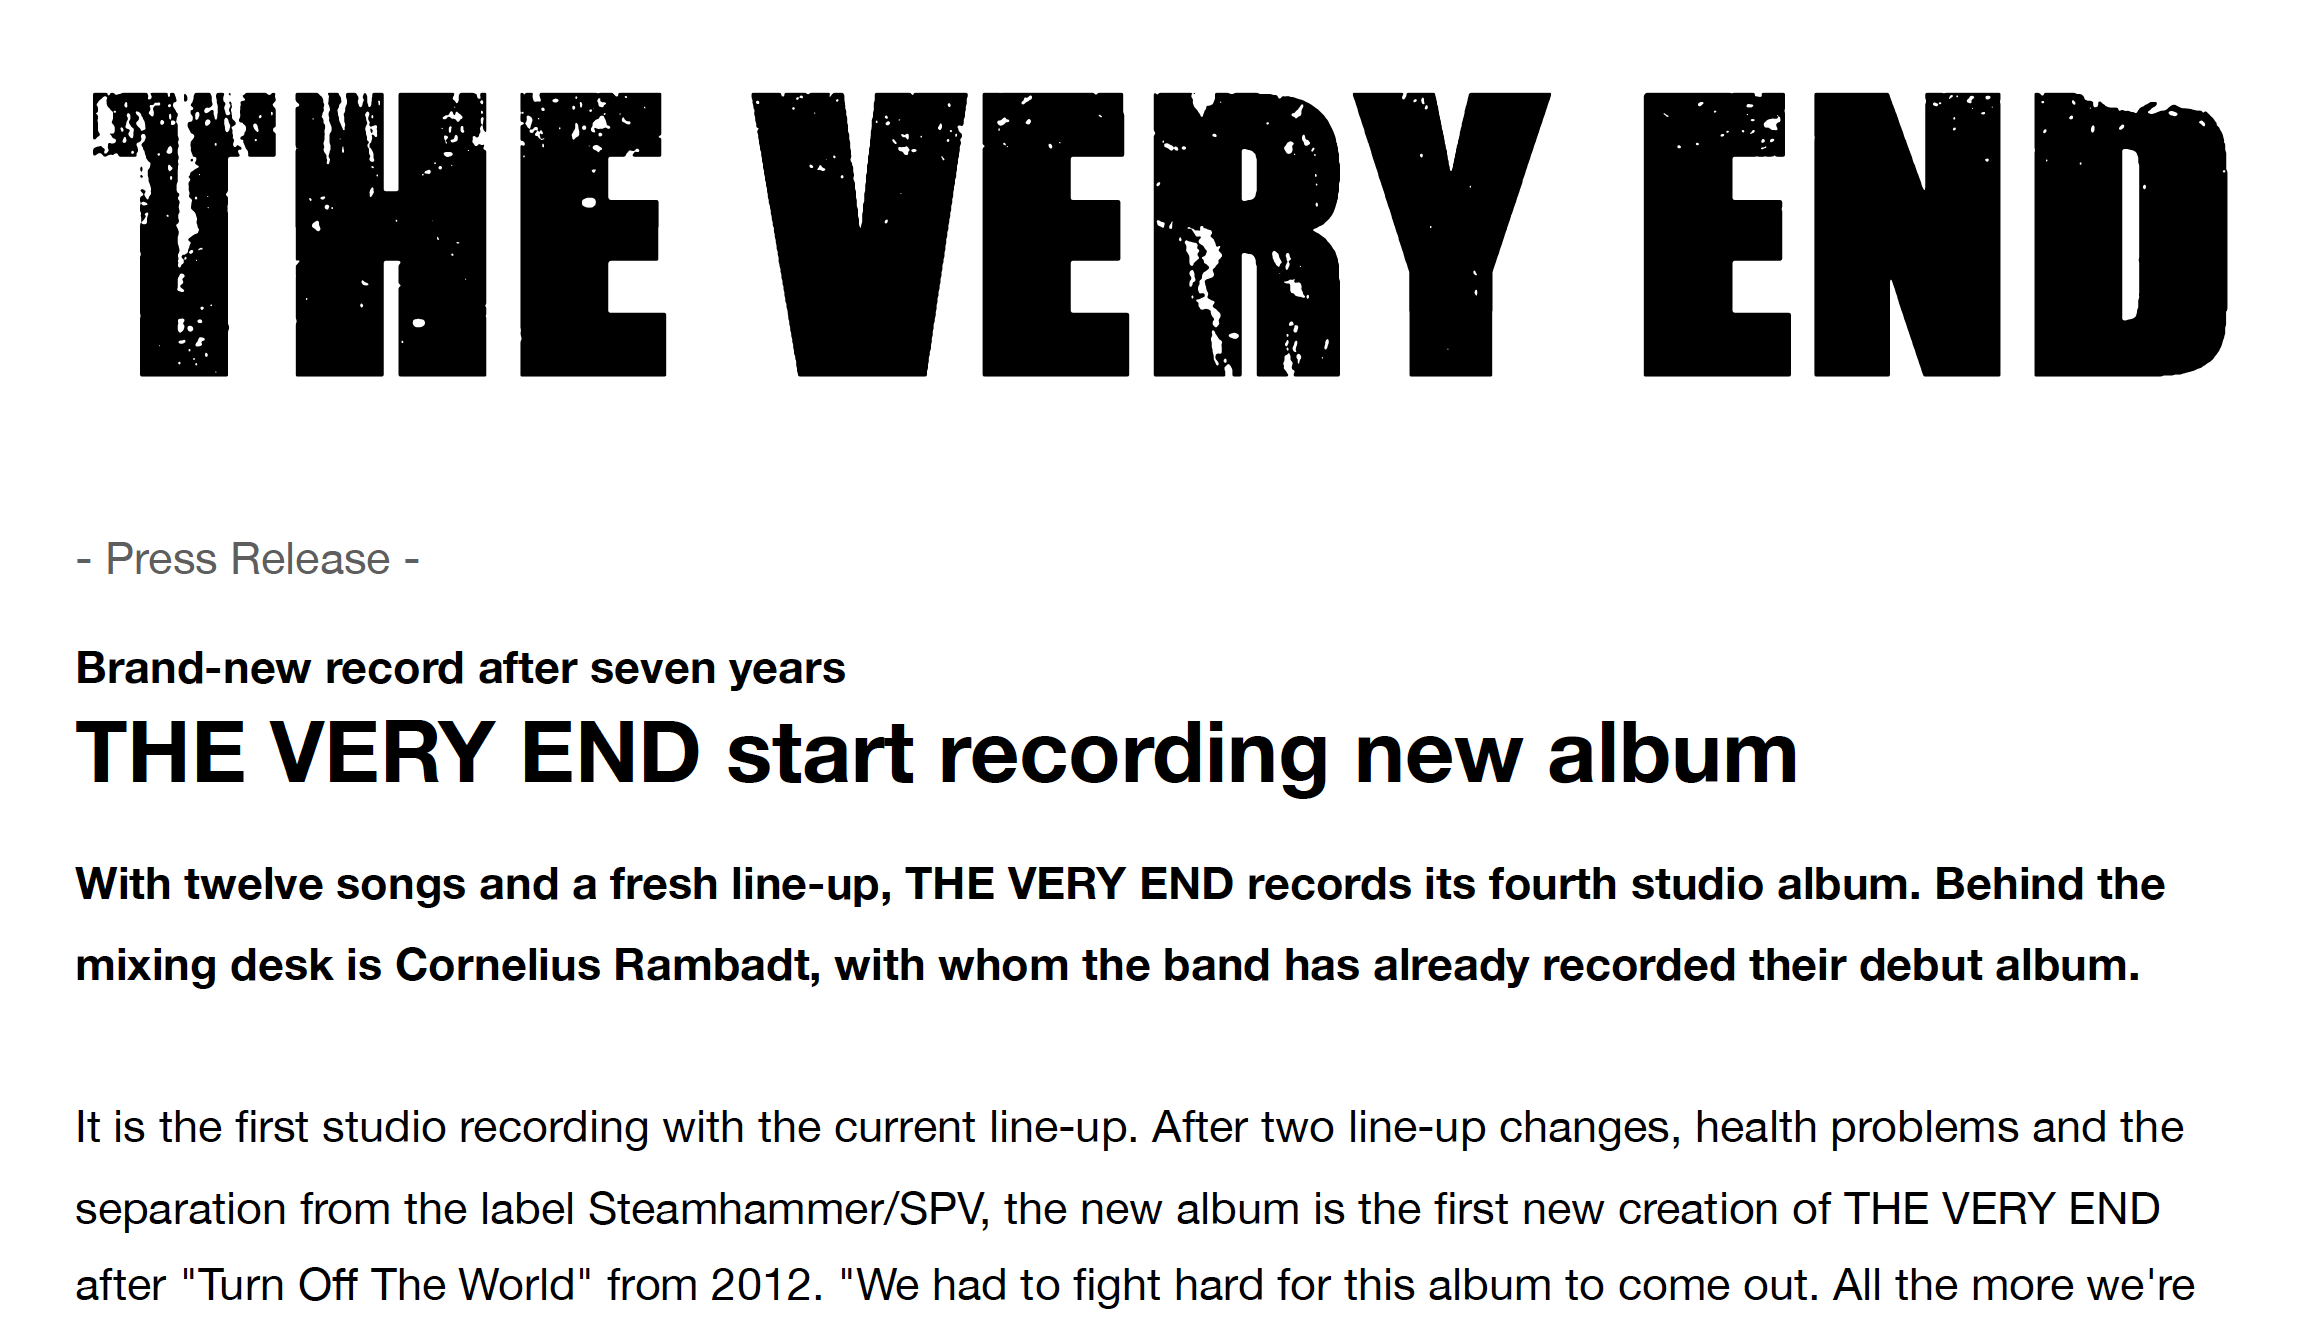 ENGLISH: The Very End start recording new album - press release